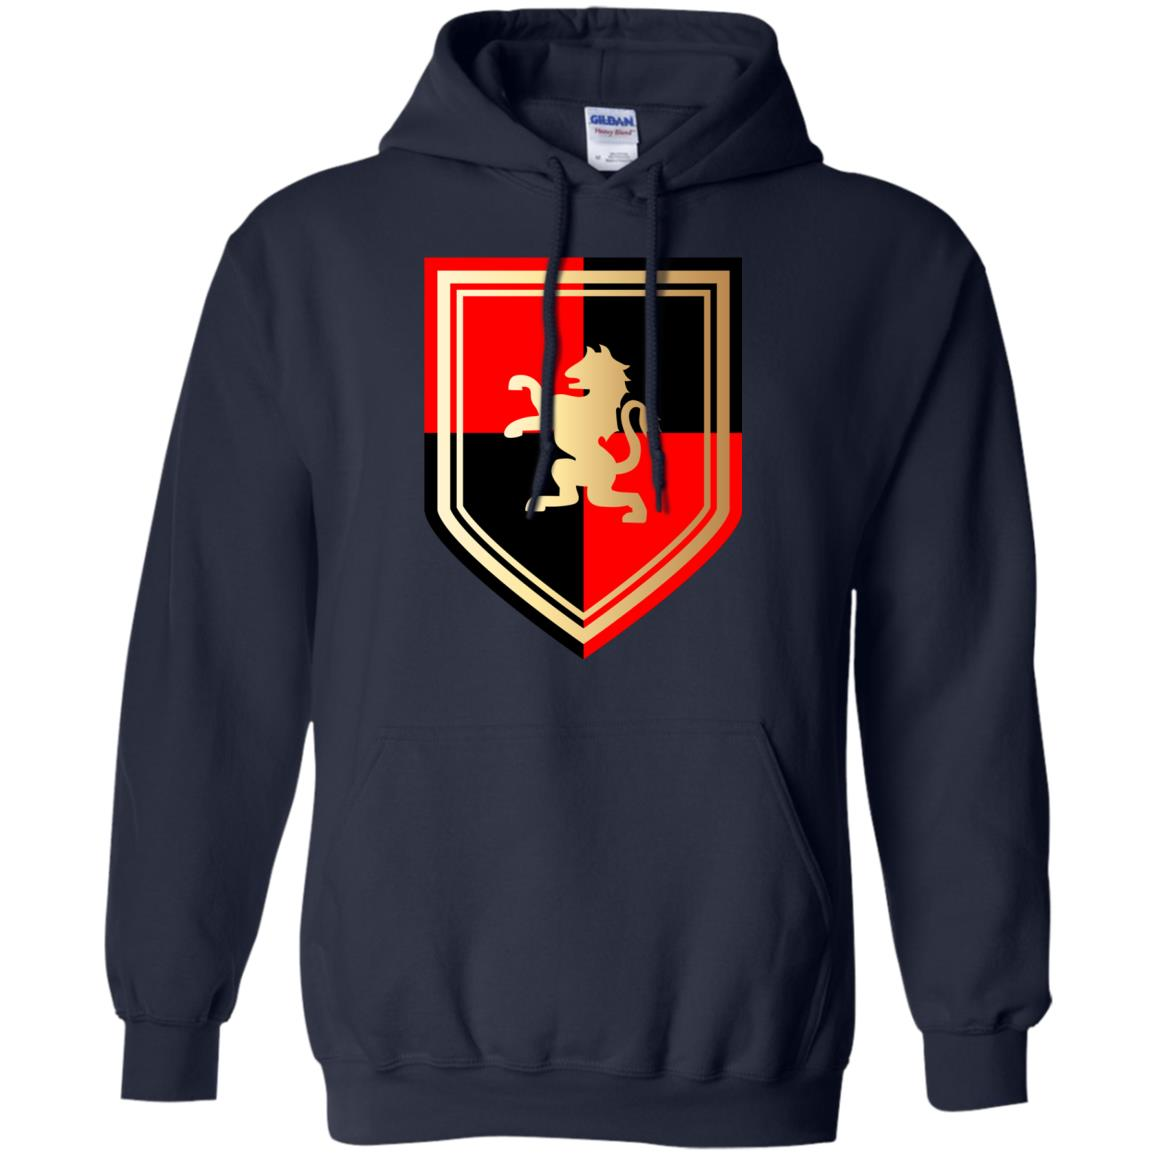 Cute Unique Medieval Halloween Knight Armor Gift Pullover Hoodie